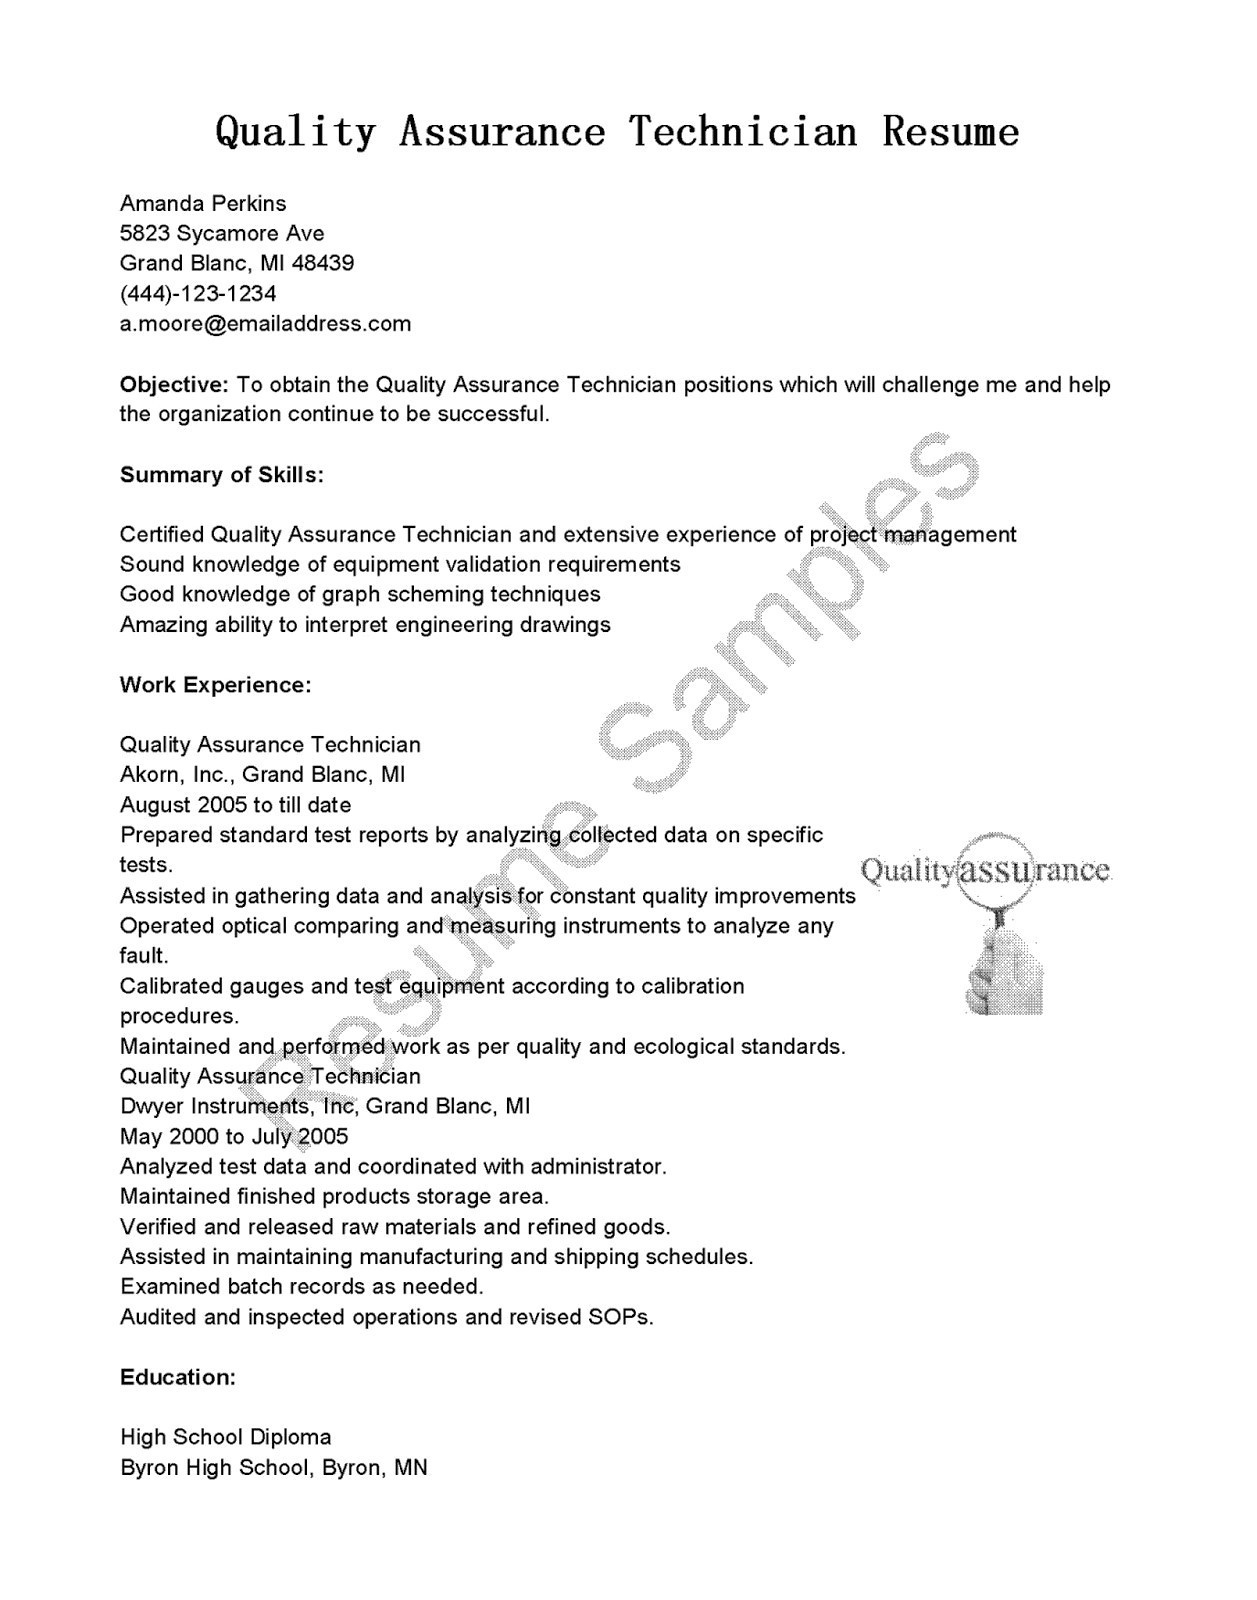 Resume Examples High School - High School Sample Cover Letter New Resumes and Cover Letters